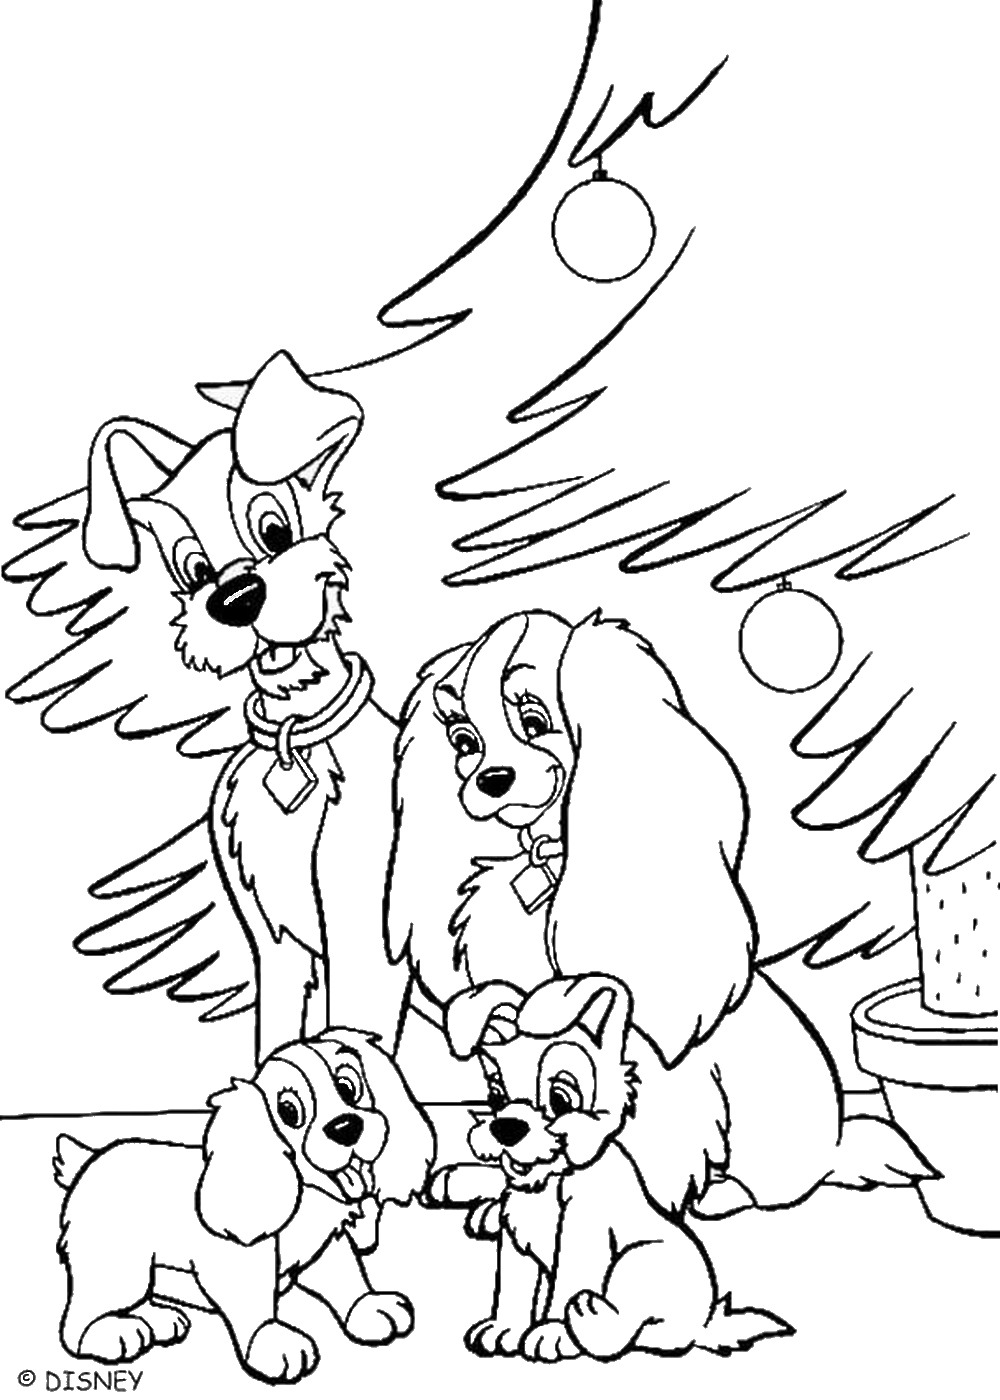 Lady And The Tramp Coloring Pages Lady And The Tramp Coloring Pages